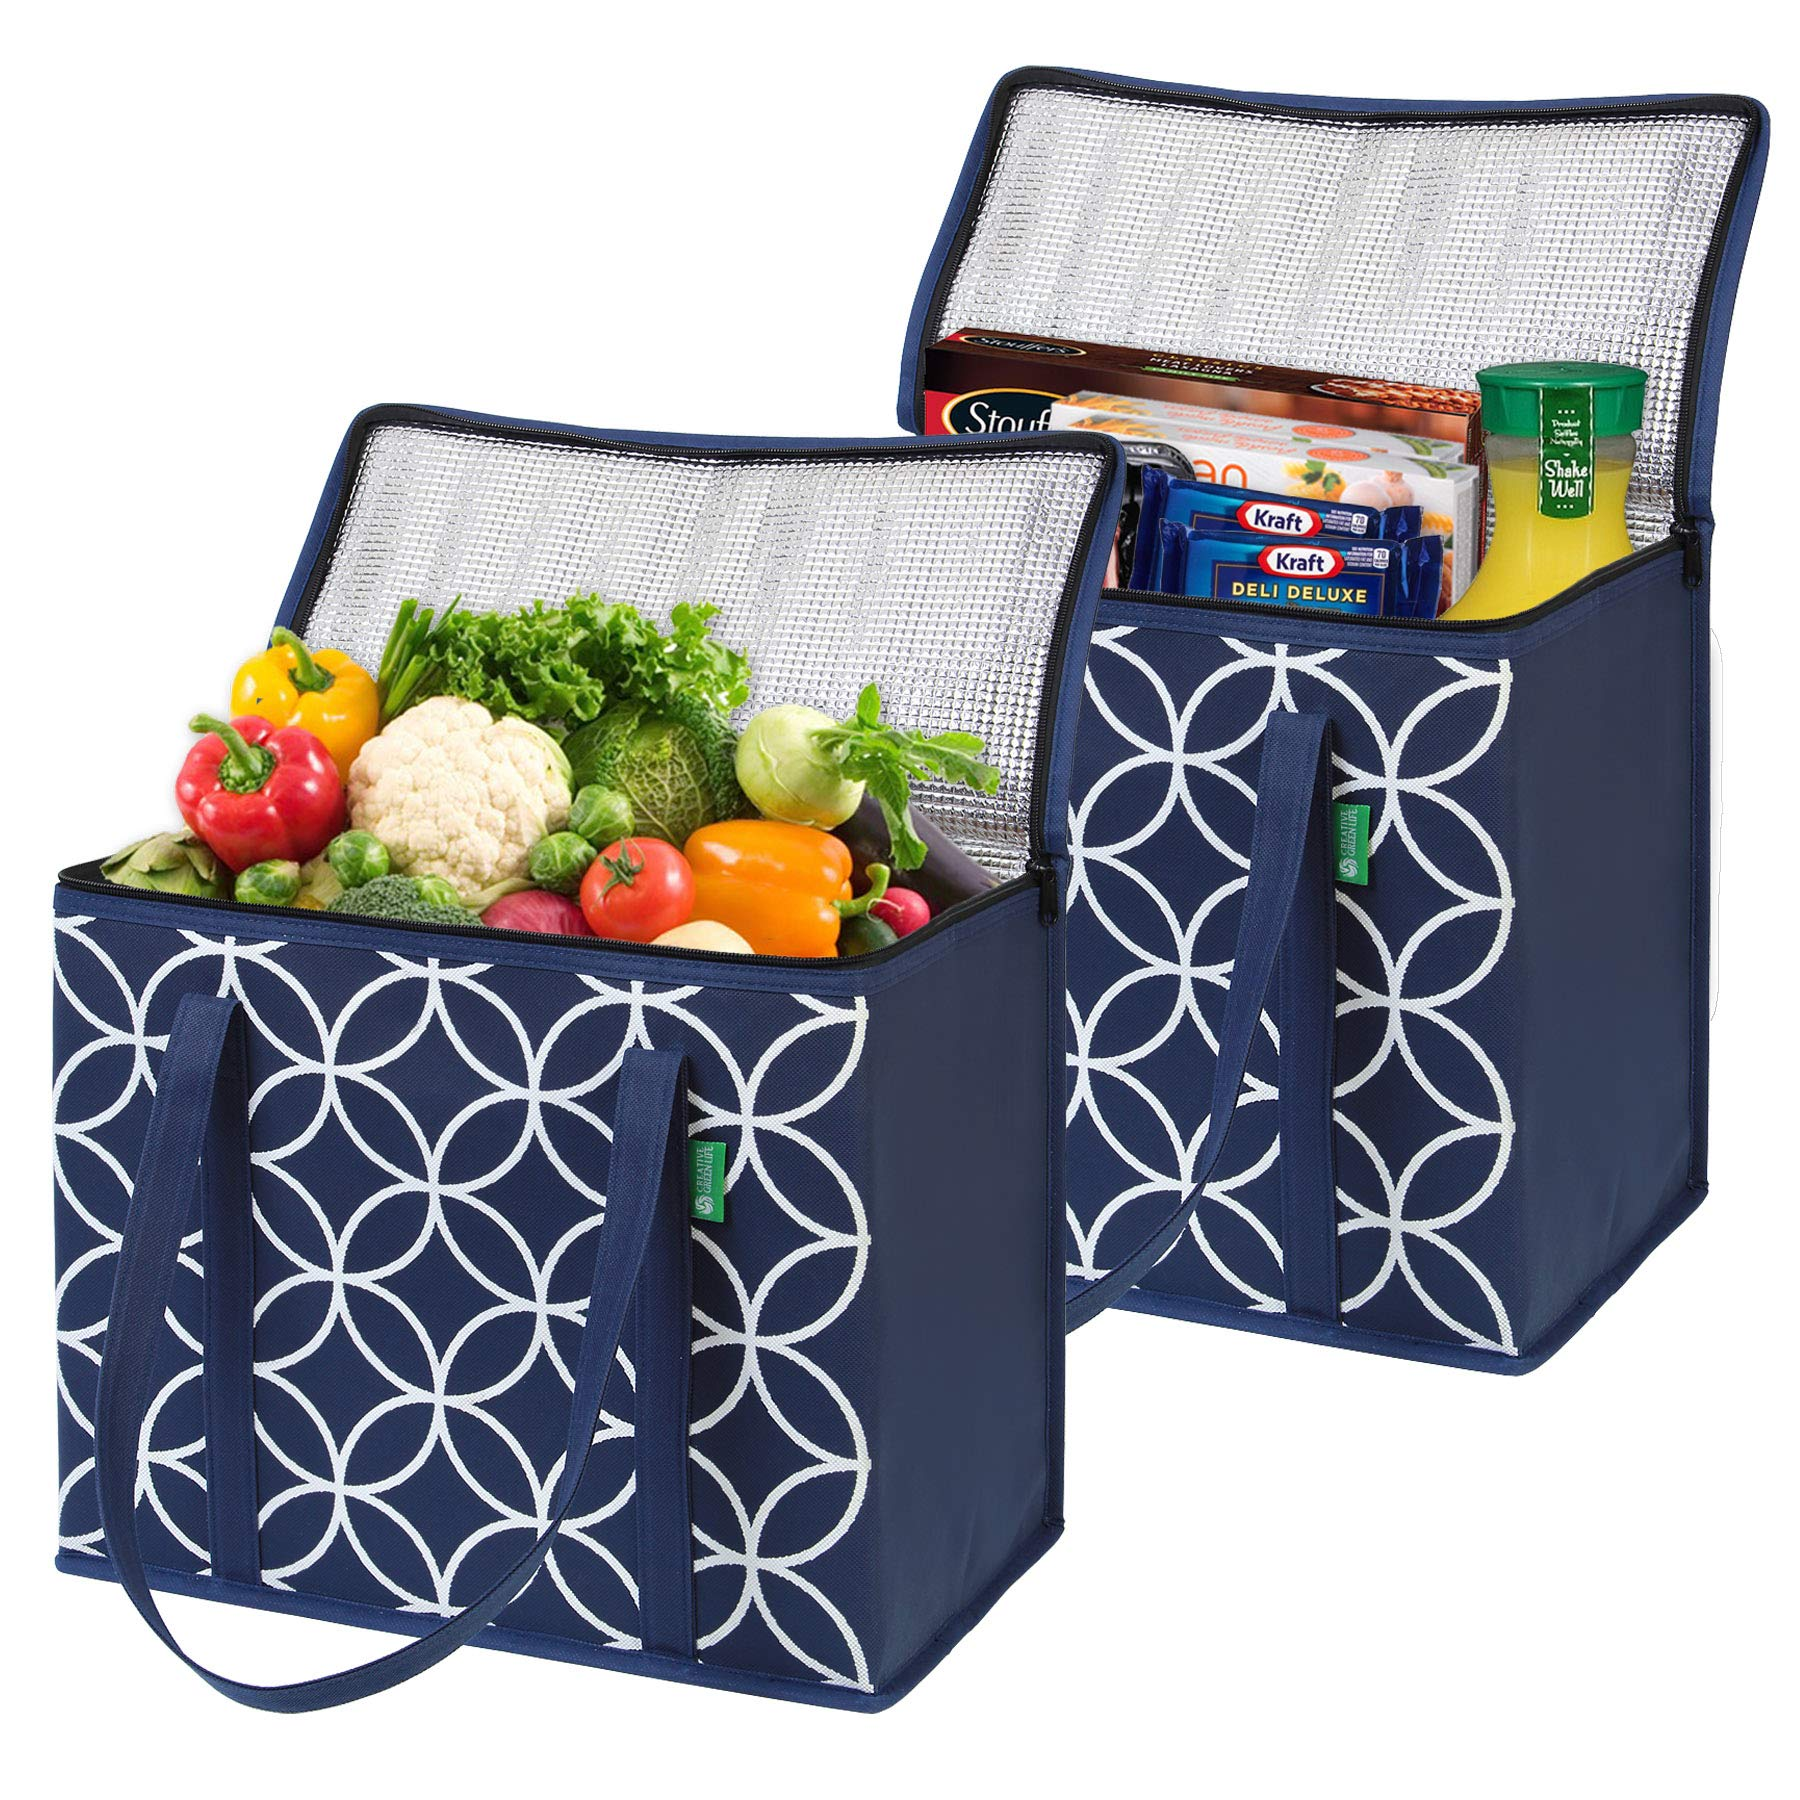 XL Insulated Grocery Bags (2-Pack, Blue). Premium Quality Cooler Bags with Solid Bottom and Sturdy Zipper. Reusable Insulated Bag Totes for Hot or Cold Food Delivery, Groceries, Travel, Shopping by Creative Green Life